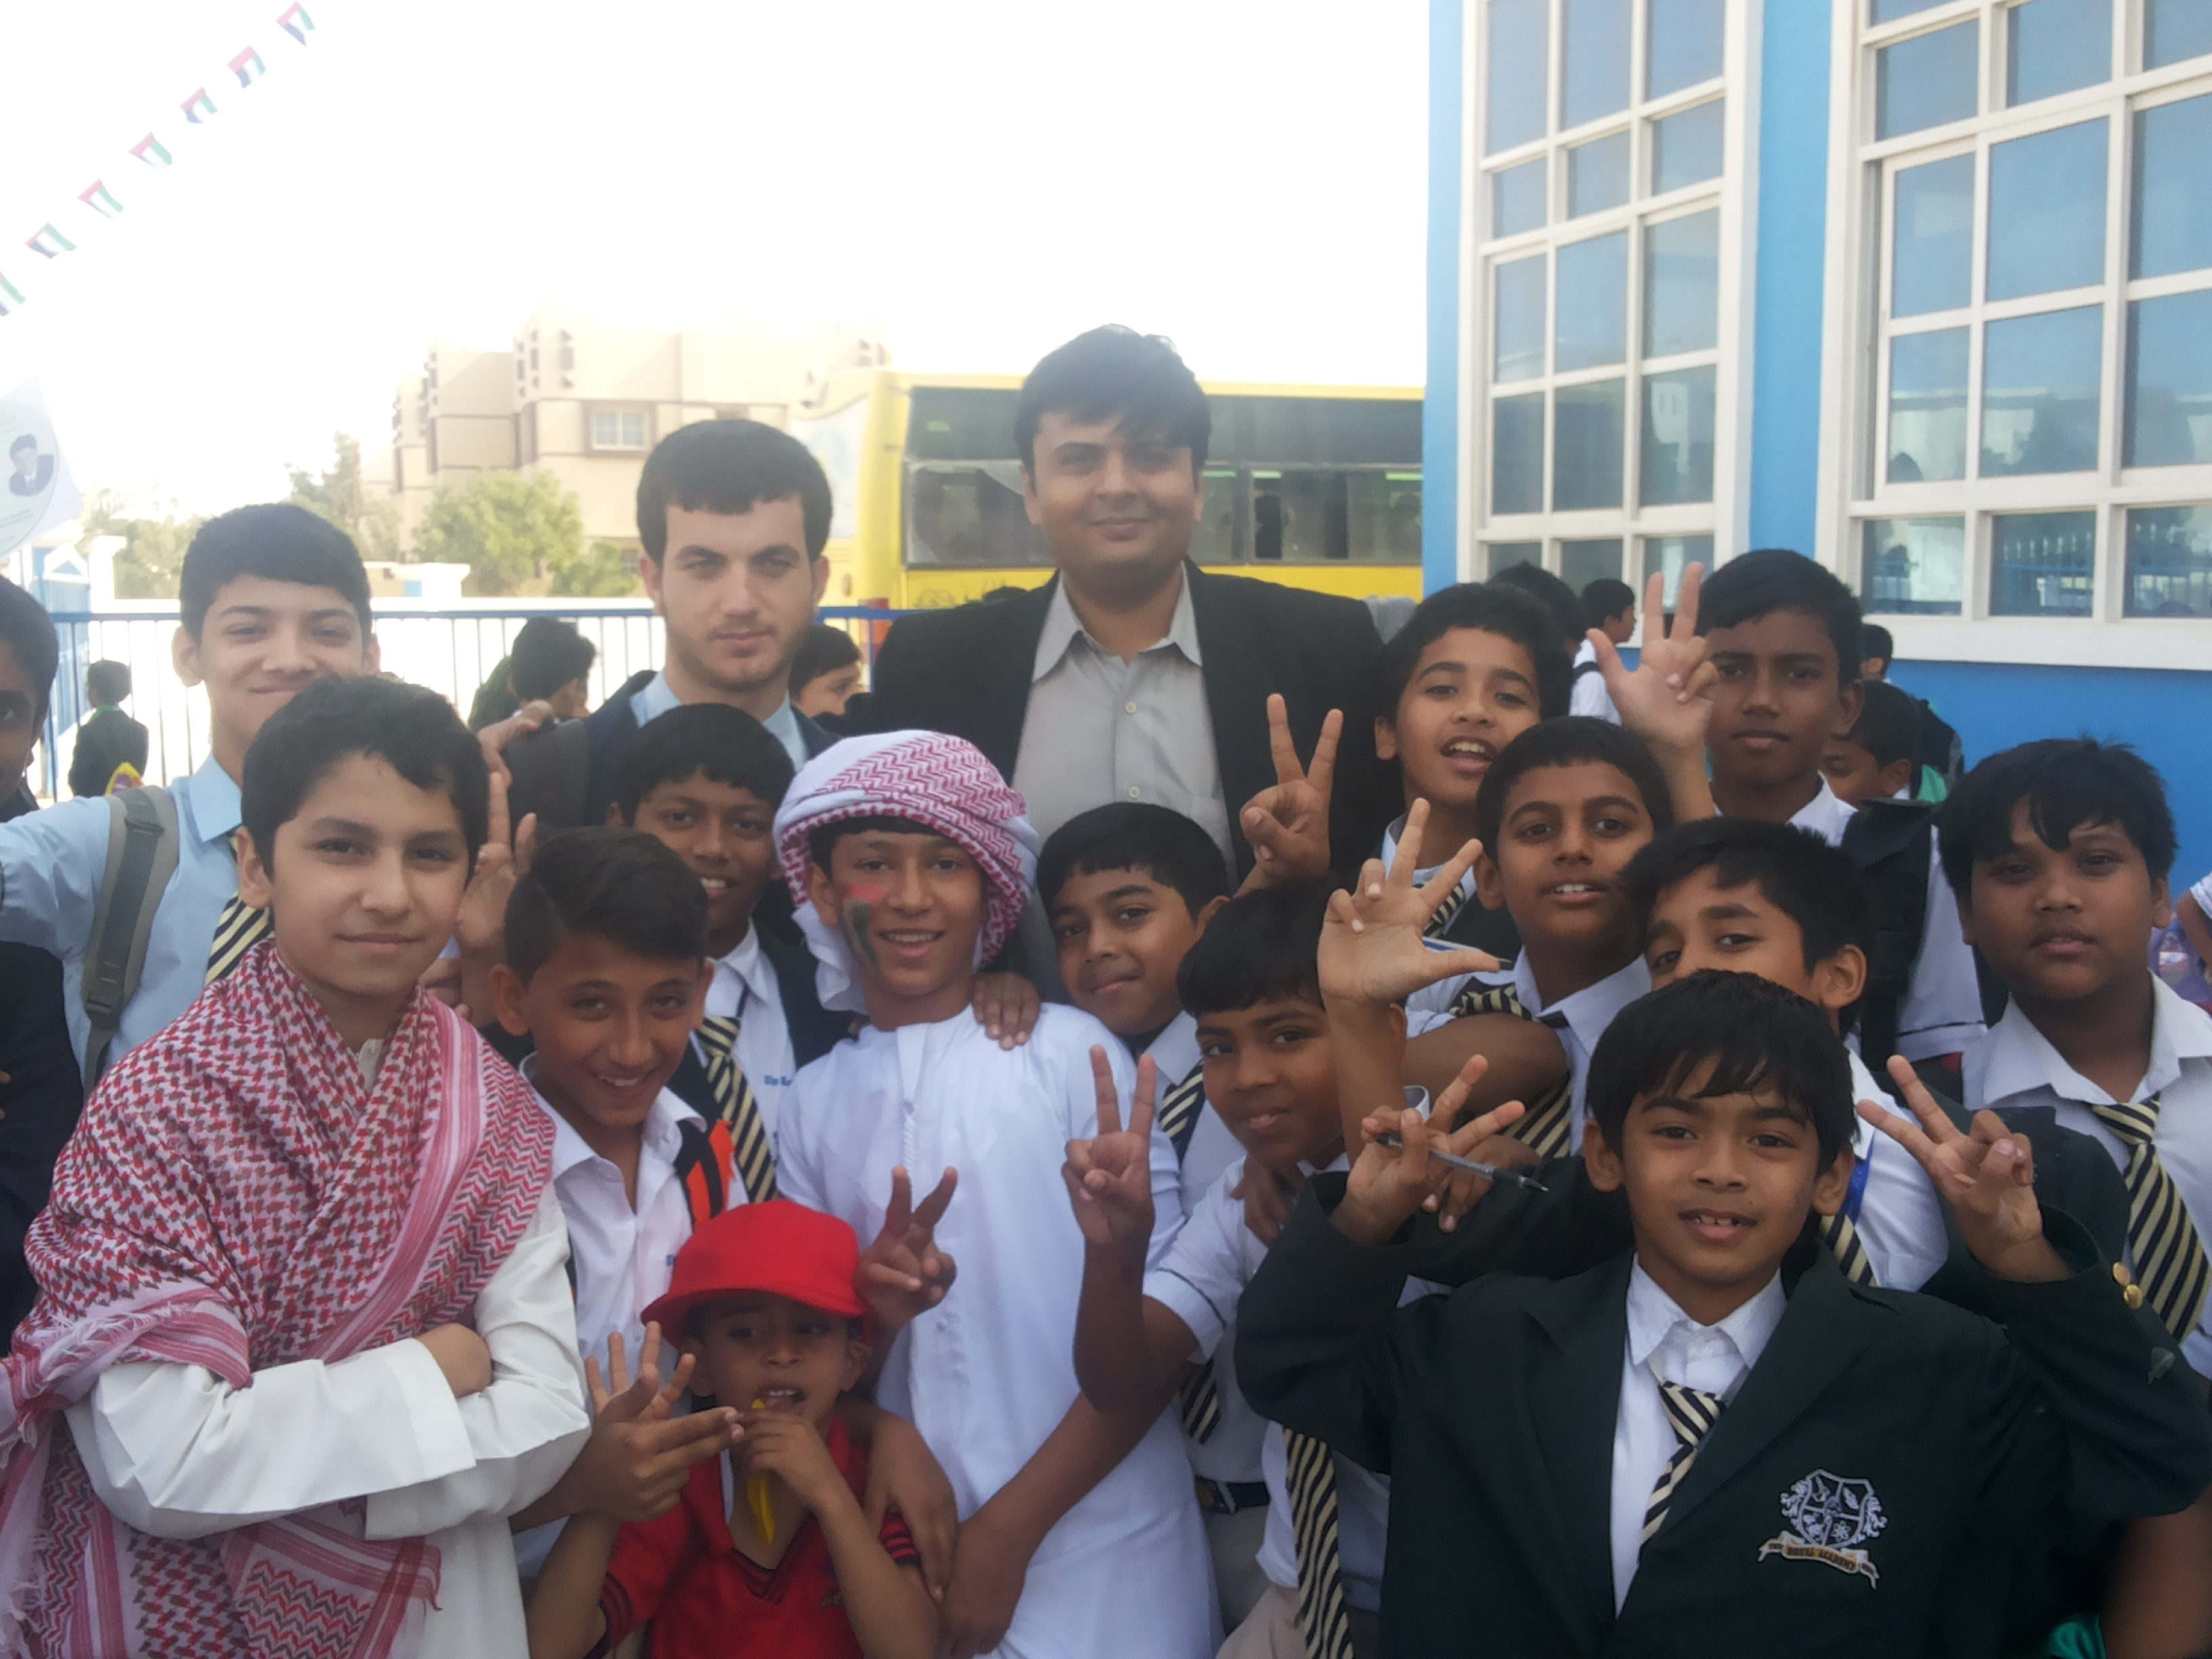 With the students of Afghan origin in a school in UAE